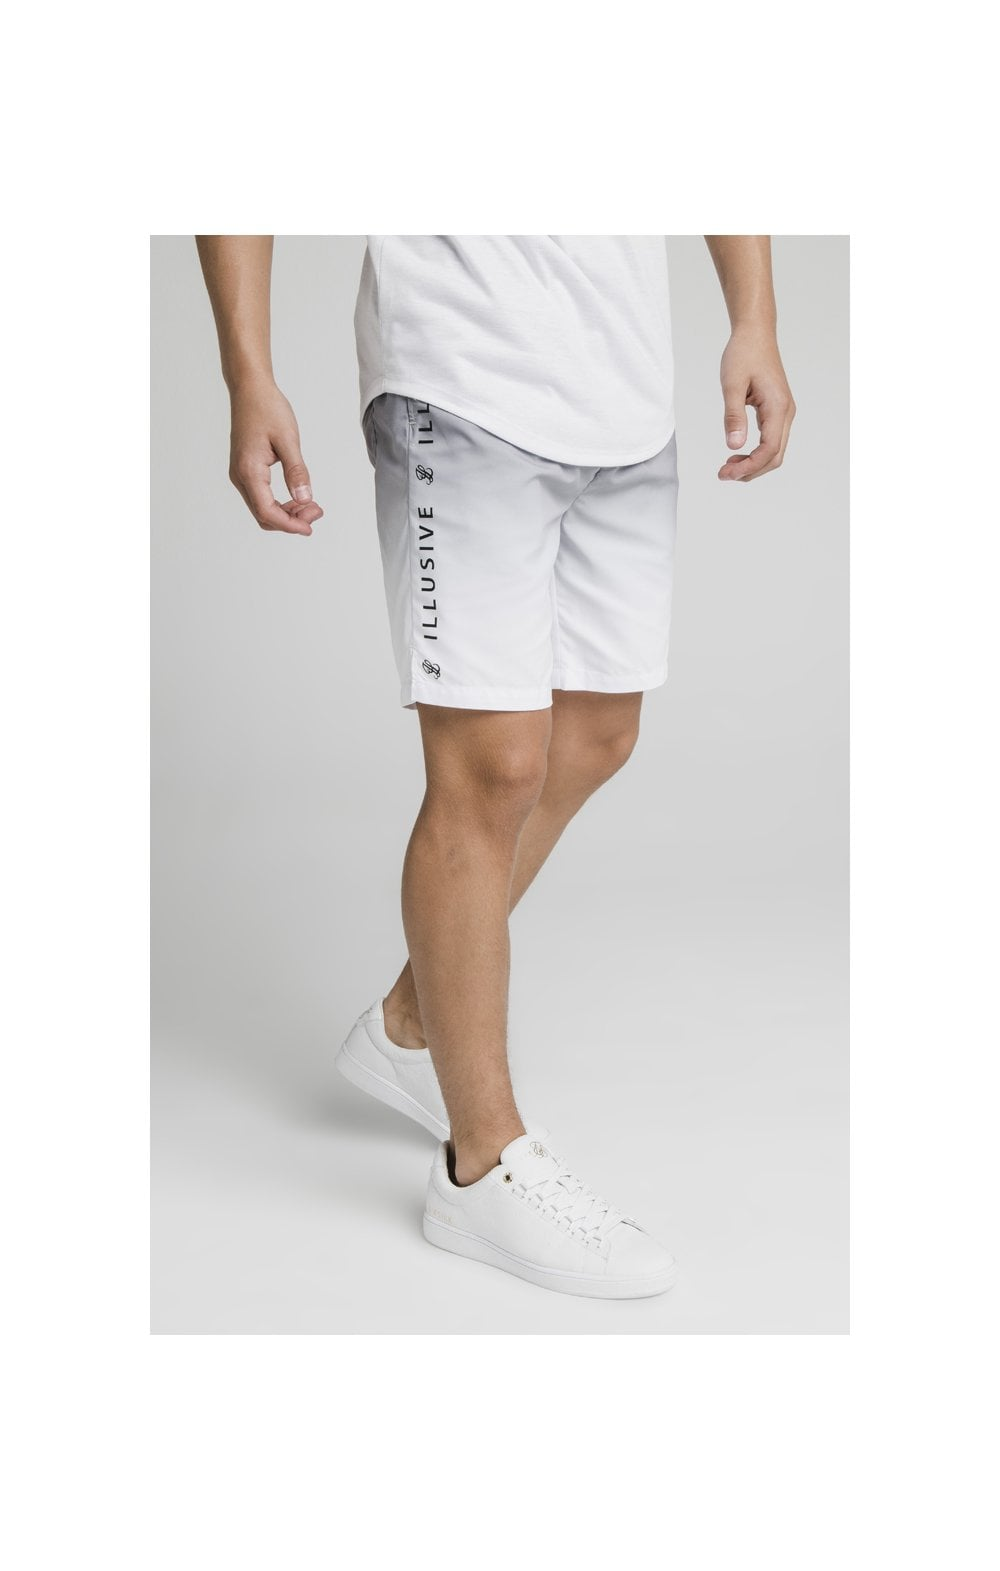 Load image into Gallery viewer, Illusive London Fade Swim Shorts - Grey & White